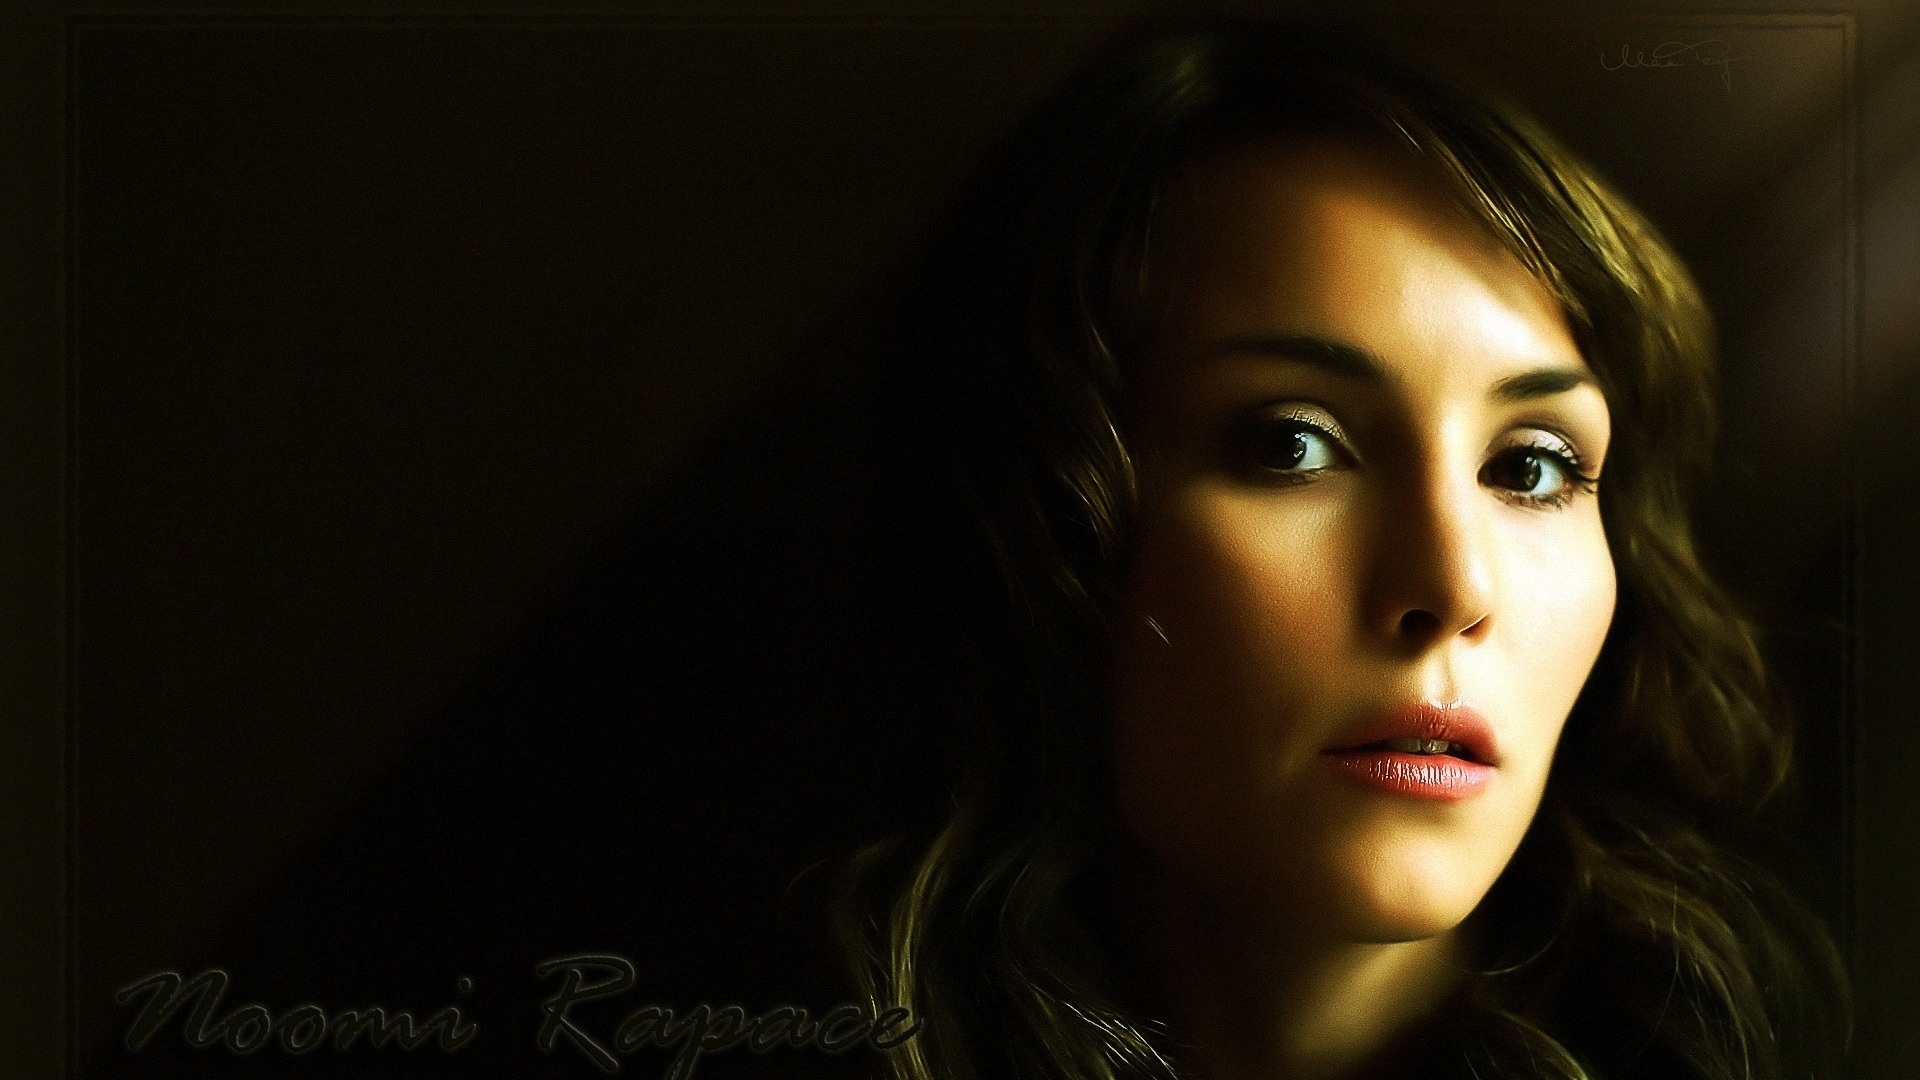 1920x1080 - Noomi Rapace Wallpapers 17